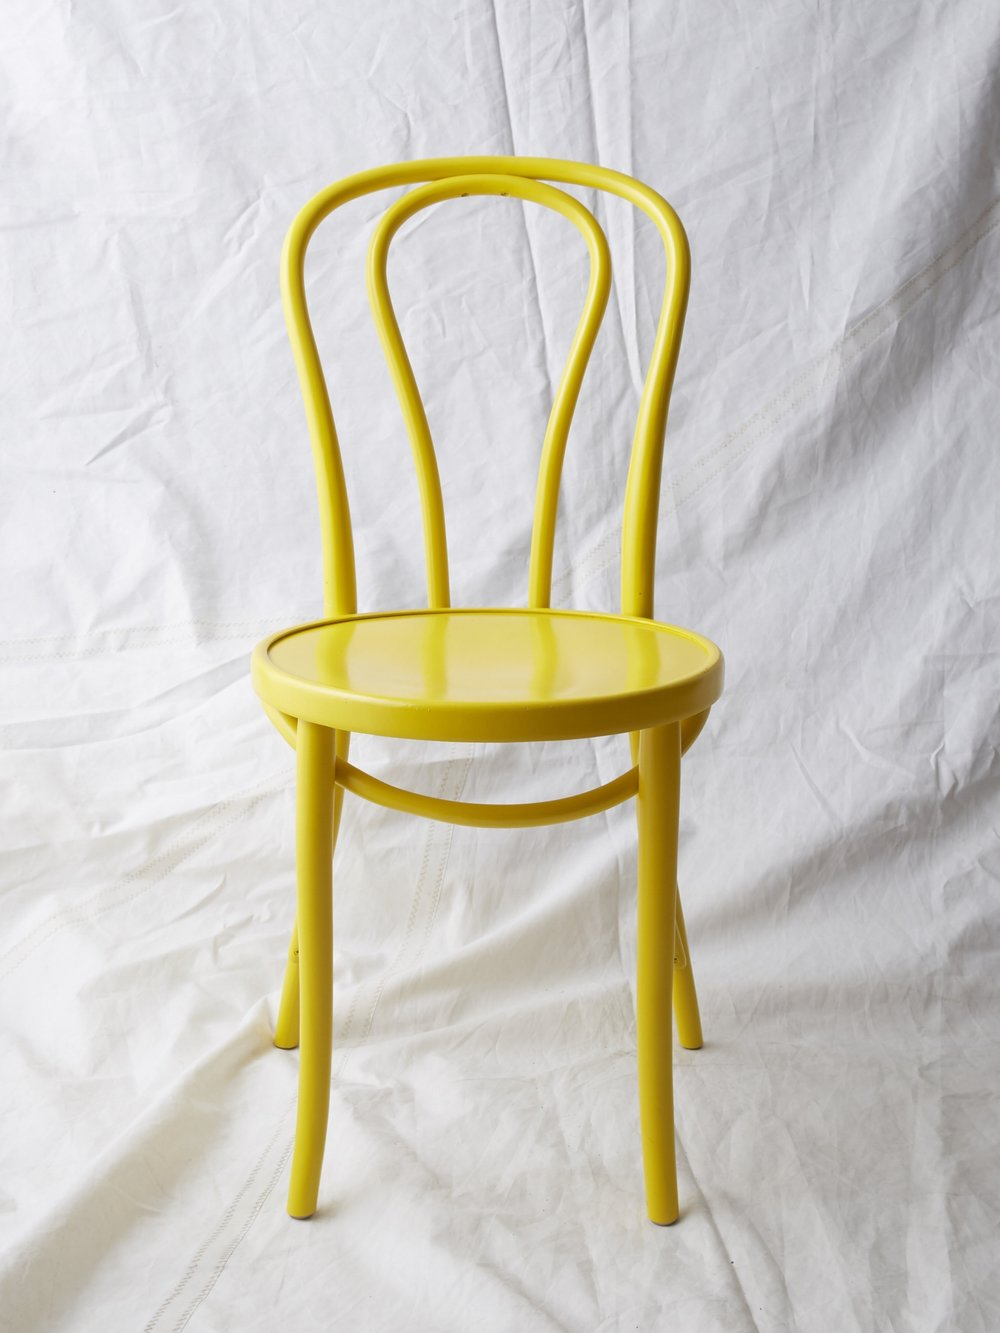 """CH021 Yellow painted Thonet chair 35"""" H x 16"""" W x 20"""" D $75/week"""